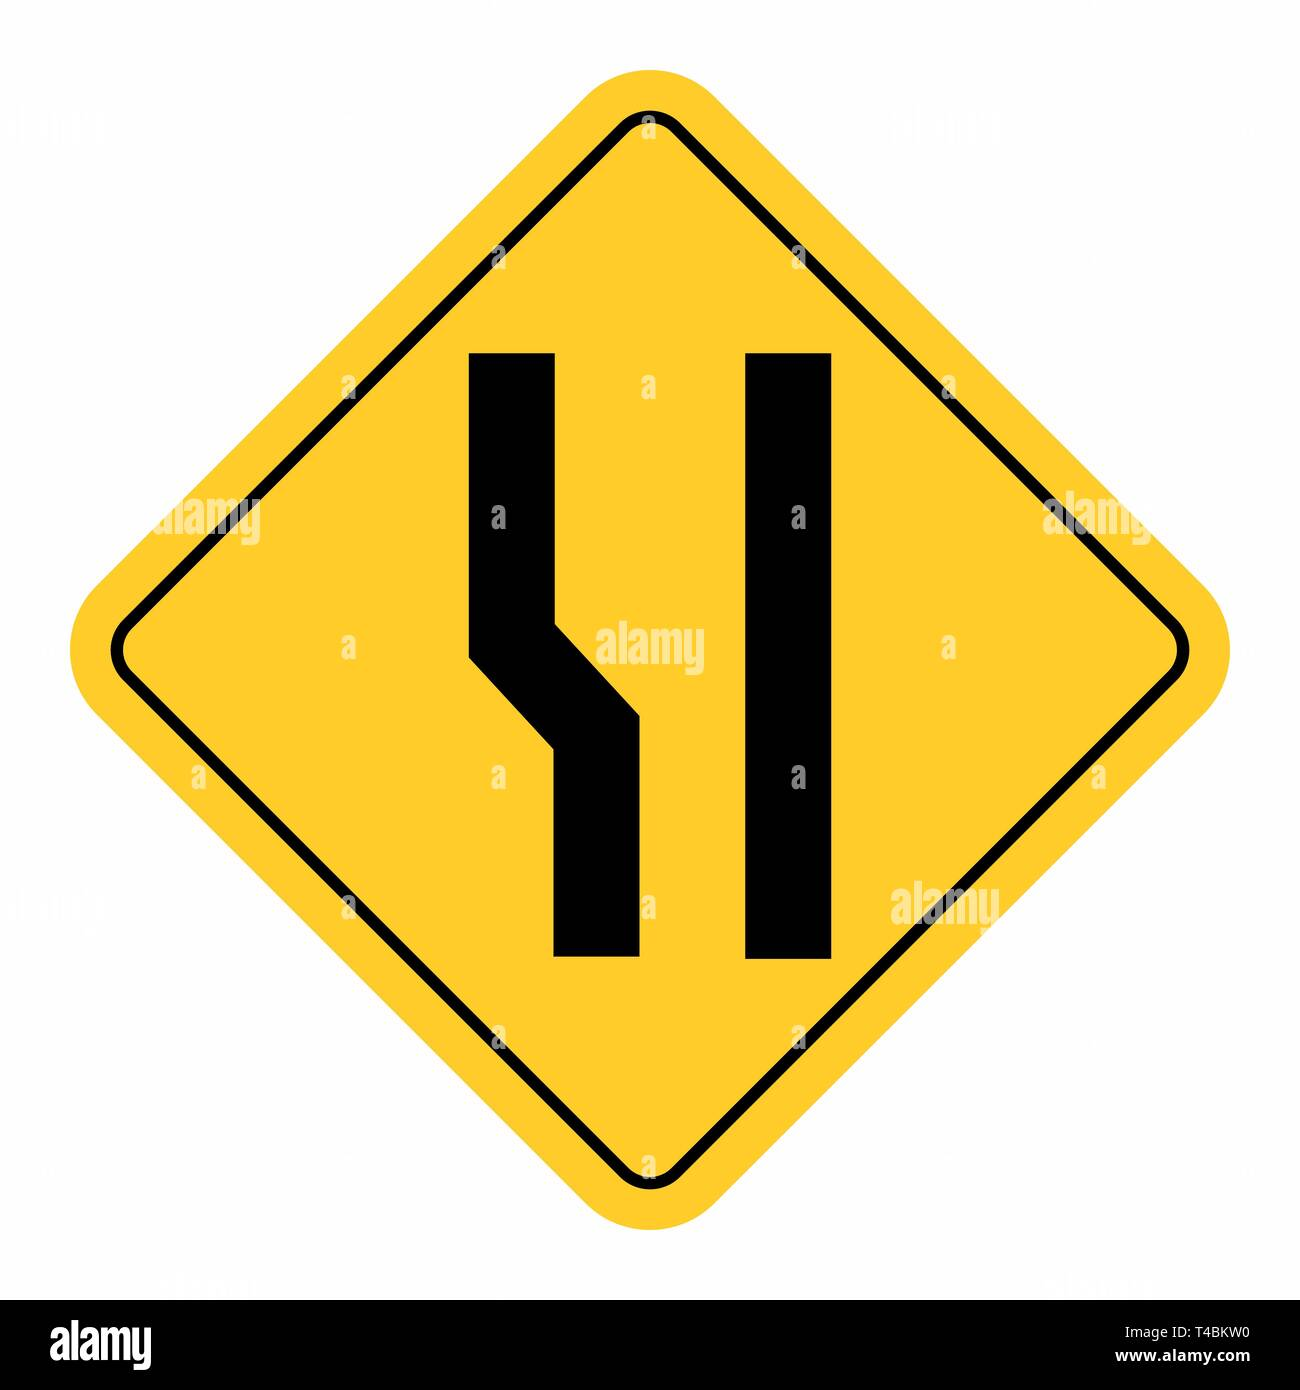 Additional lane ahead road sign - Stock Image